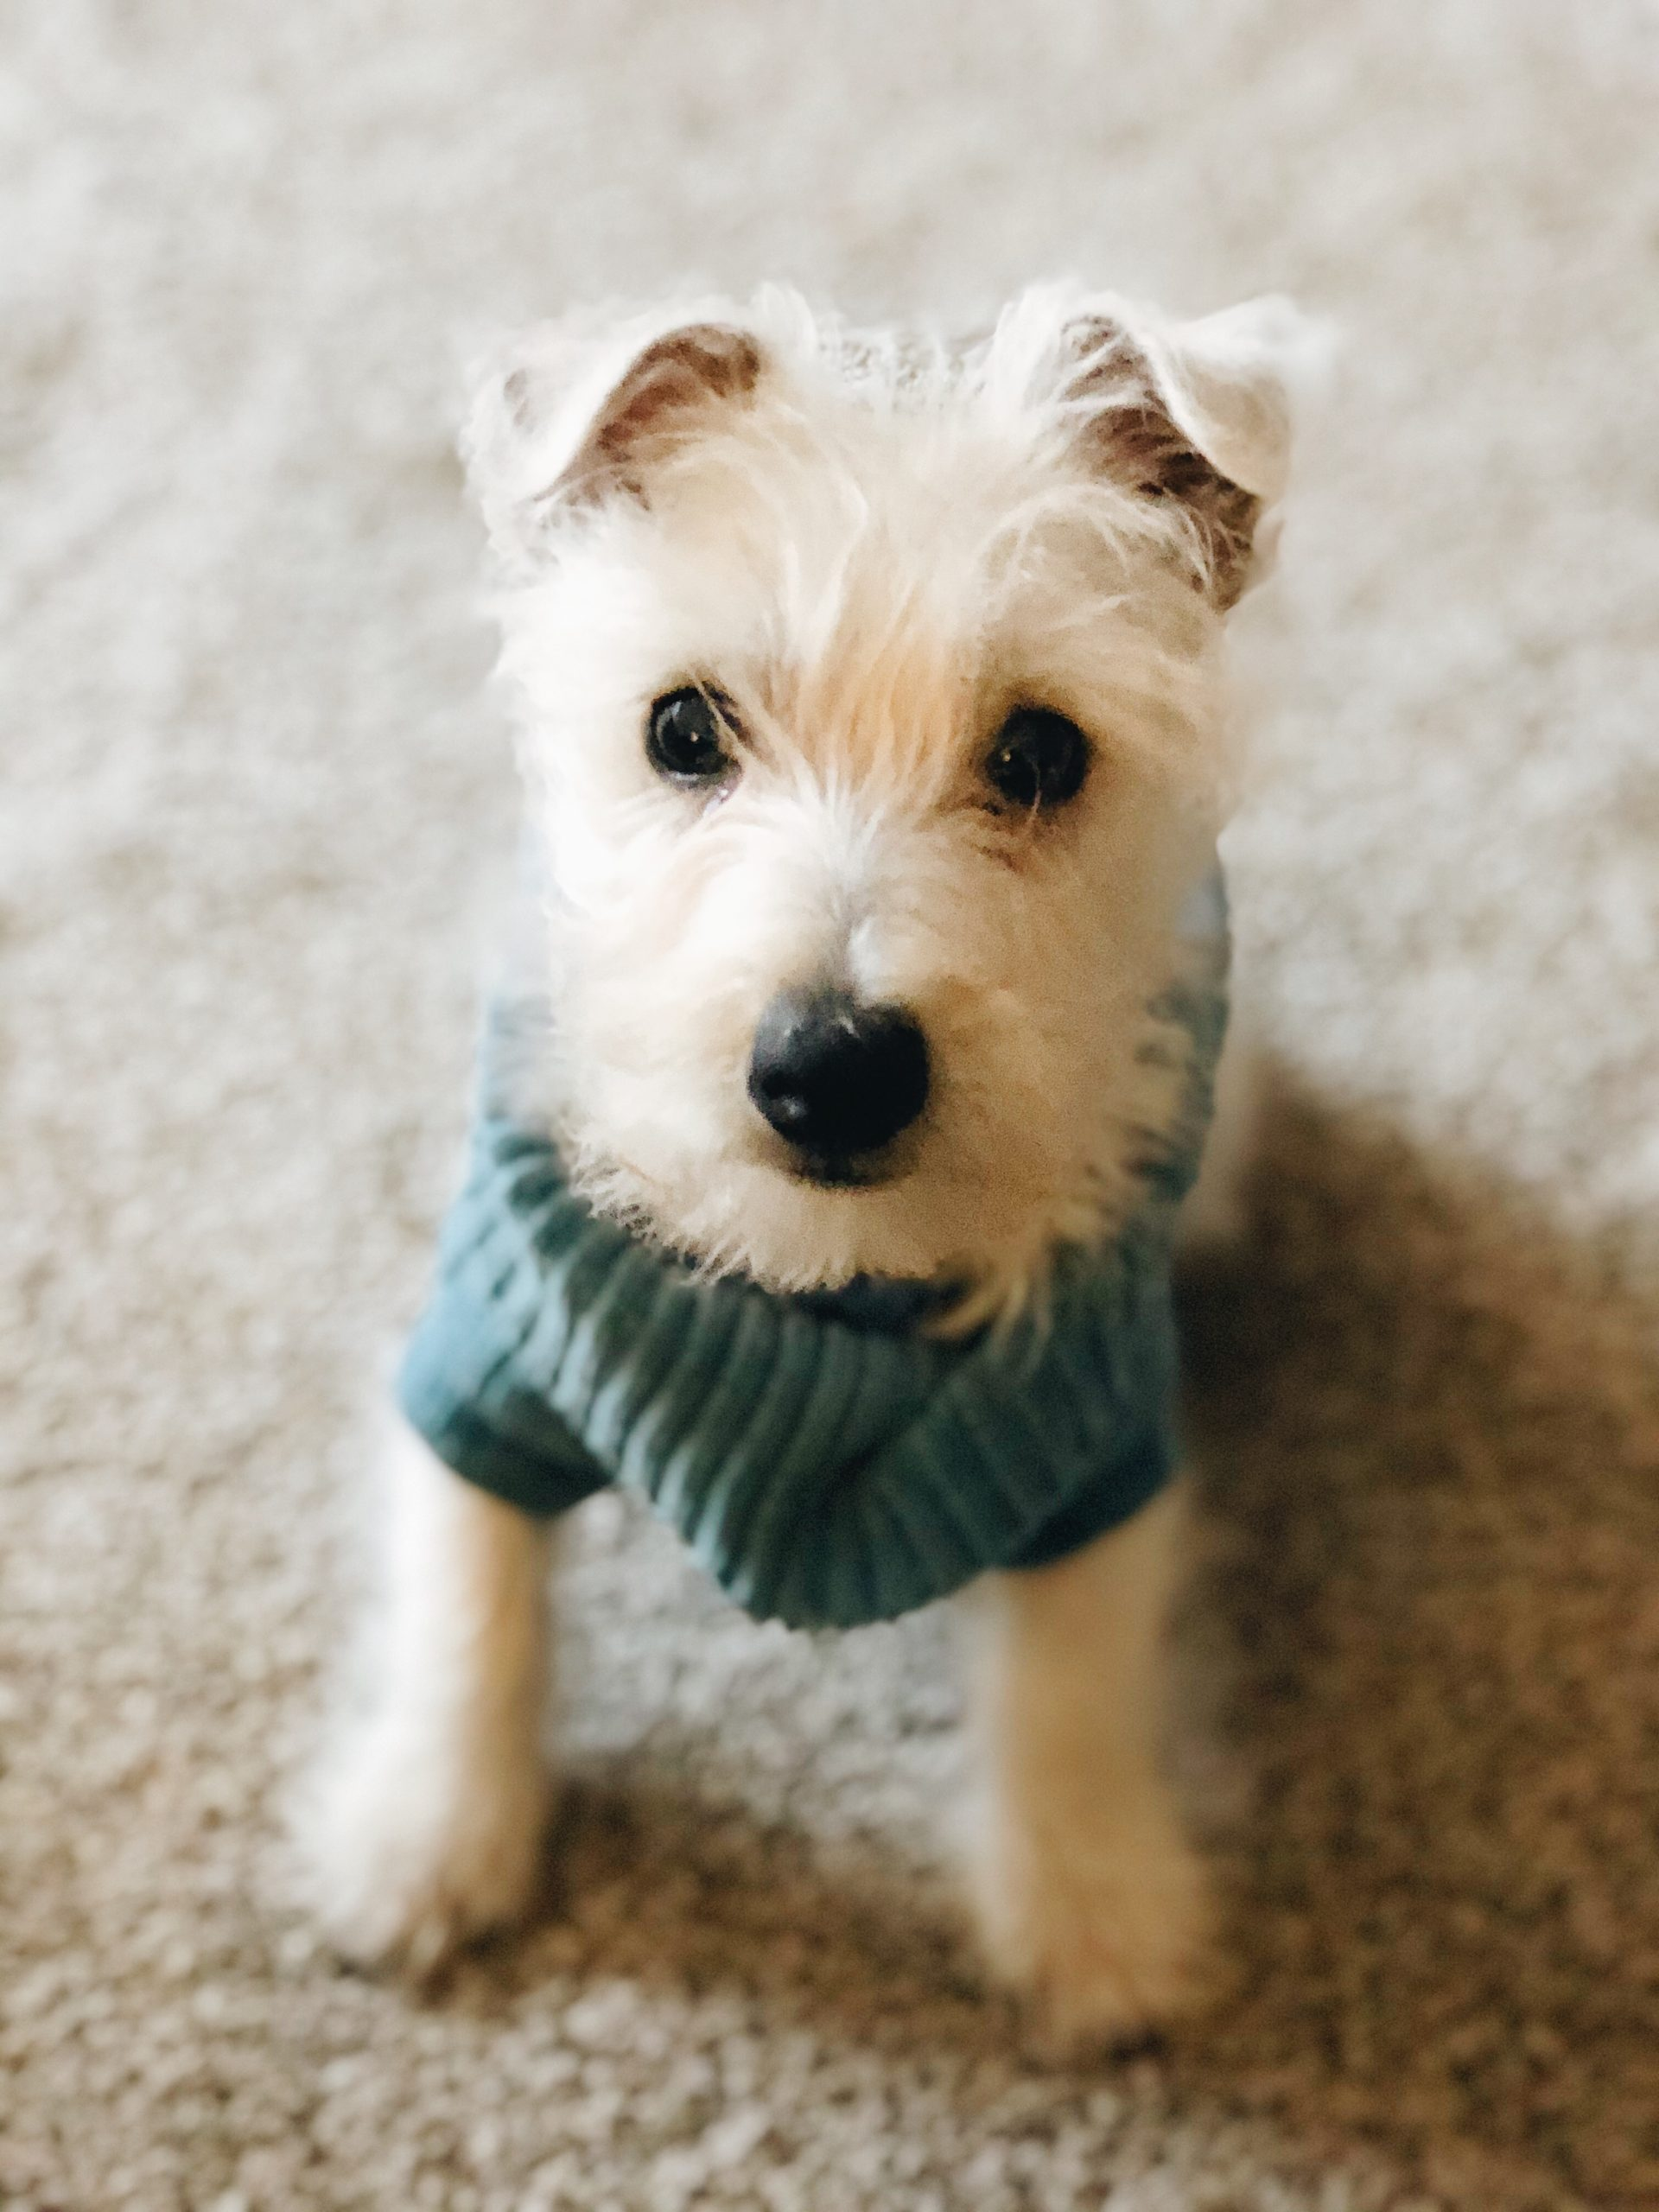 Should I get a puppy? The lessons we learned for getting this sweet pup